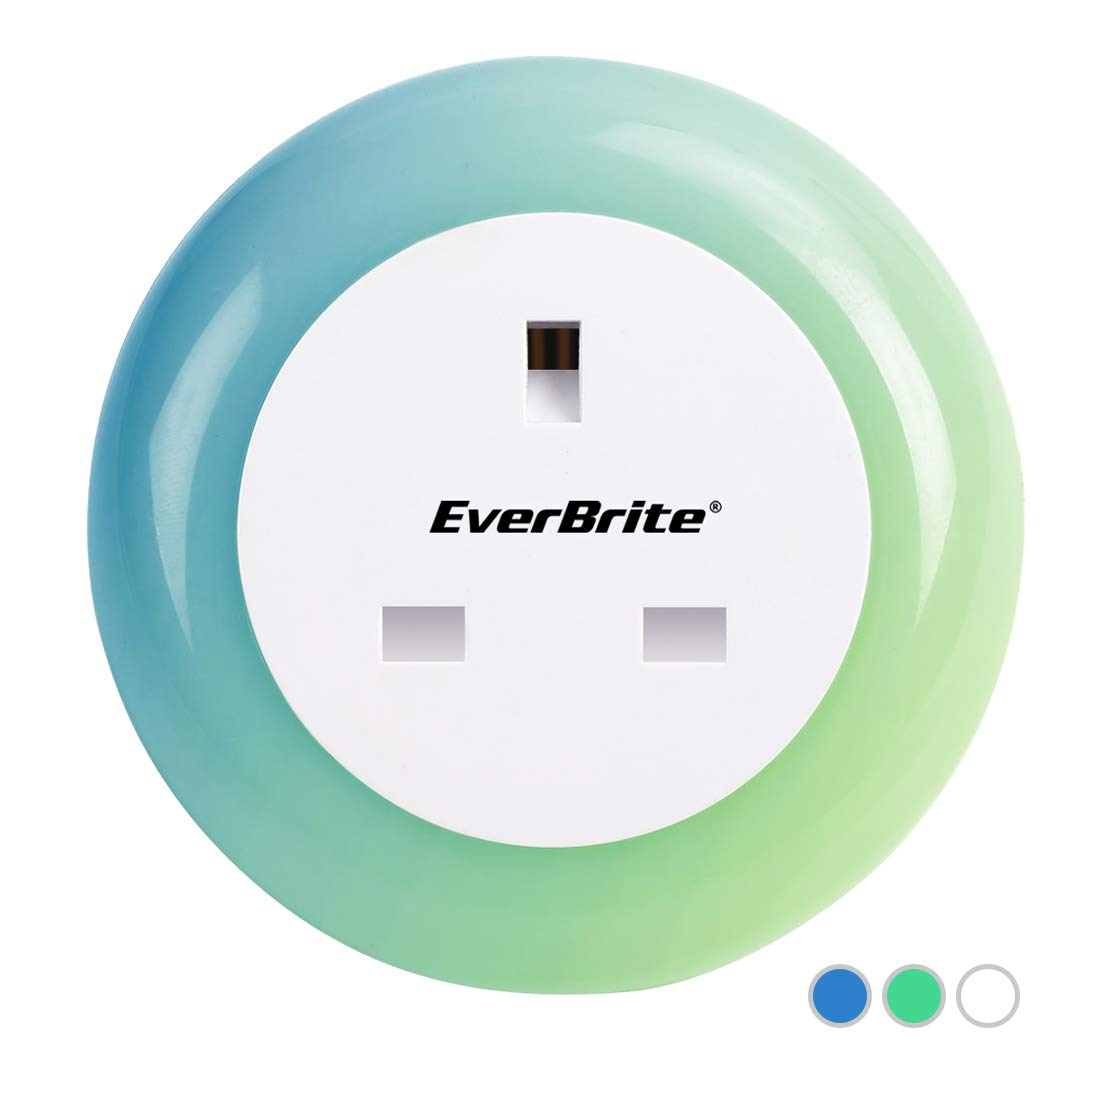 EverBrite Led Plug in Night Light for Children Night Lamp with Dusk to Dawn Touch Sensor Socket Indicator Lighting Multi Colors for Bedroom Bathroom Nursery Hallway LTD